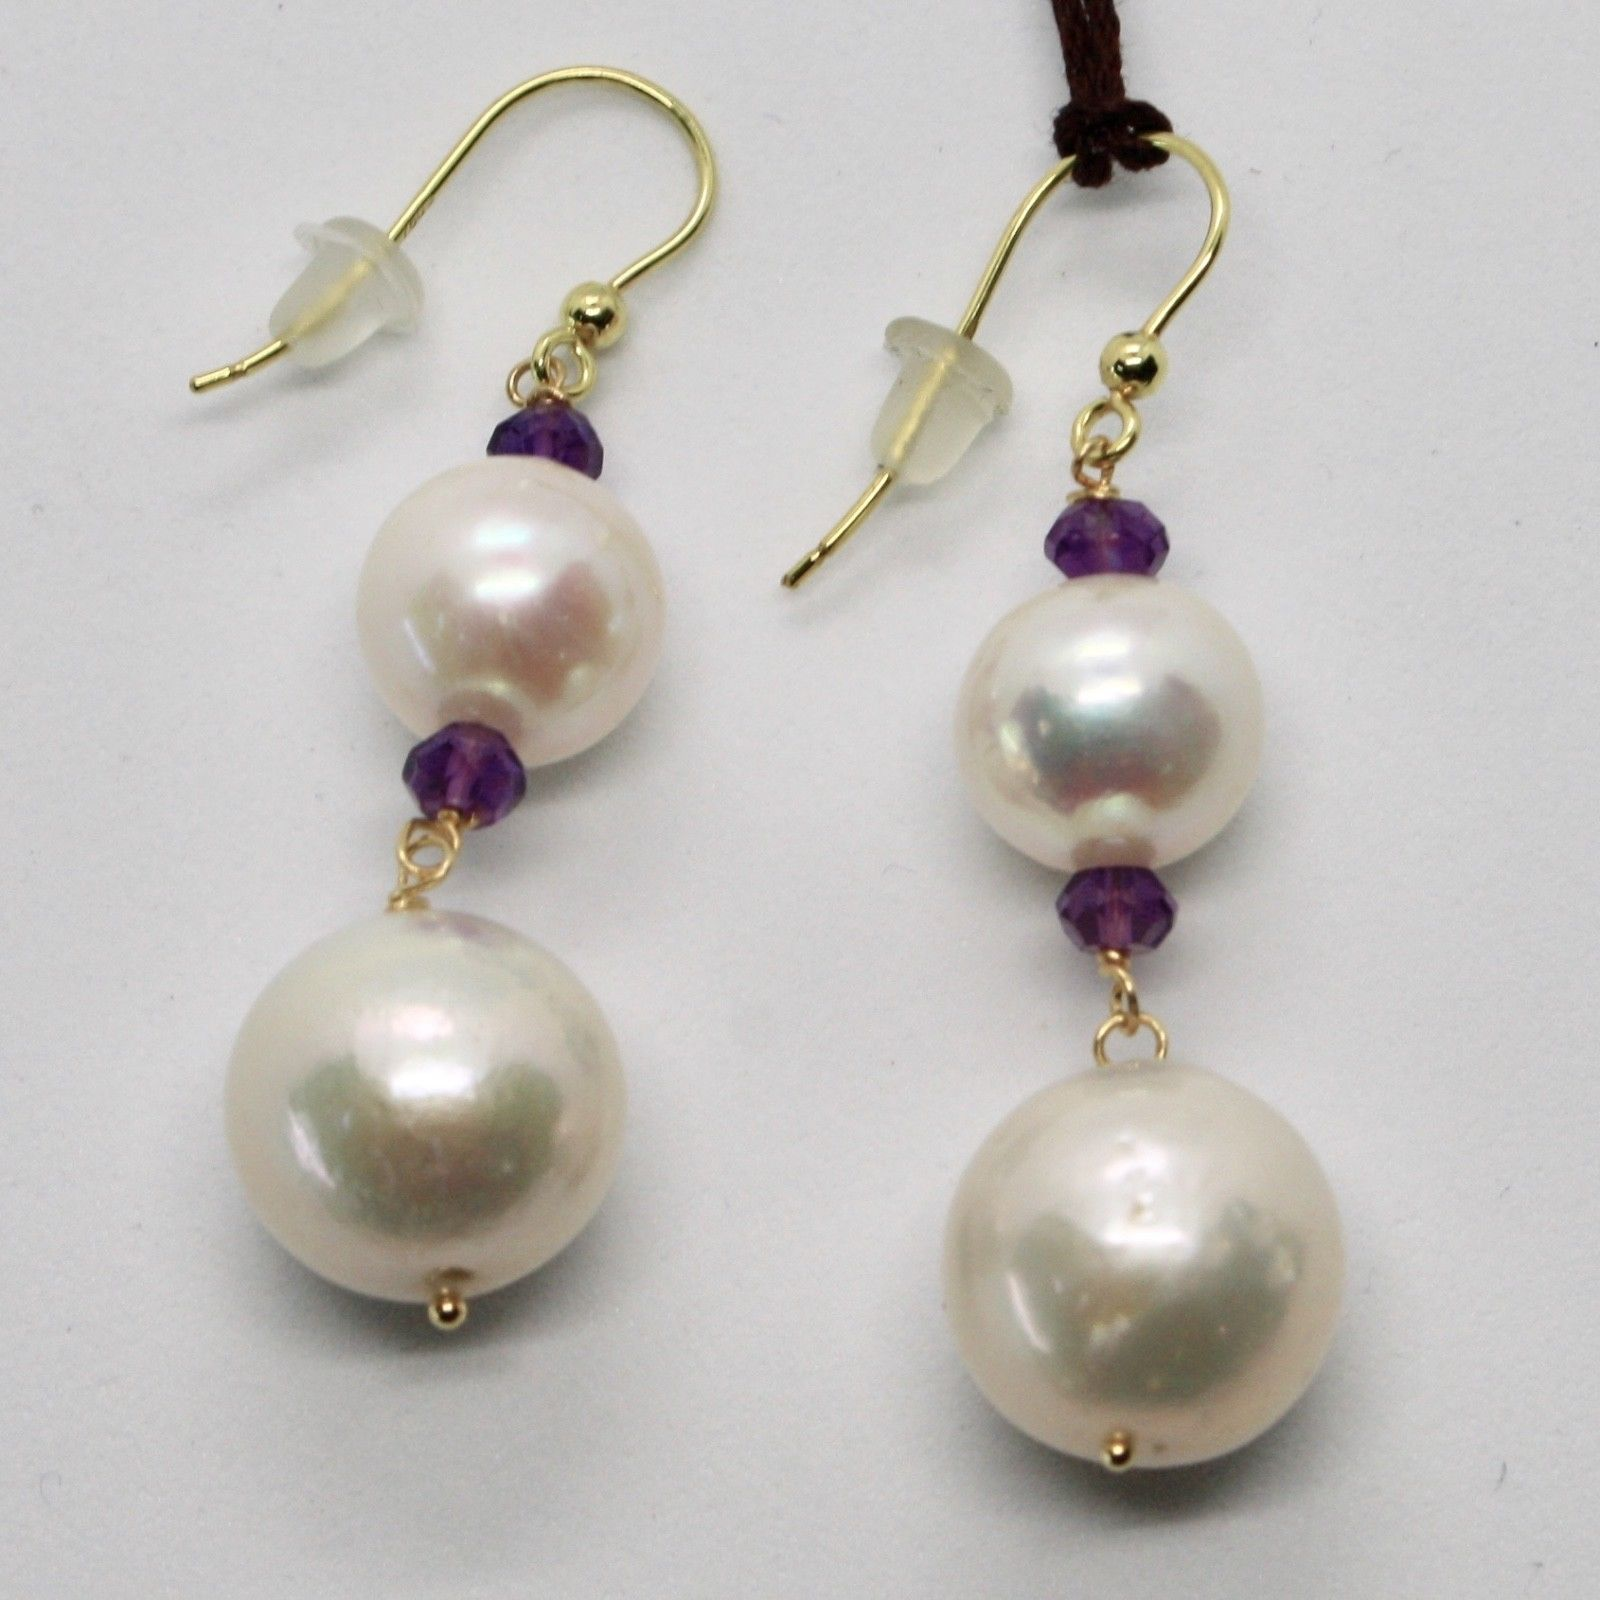 Yellow Gold Earrings 18k 750 pearls freshwater and Amethysts Made in Italy